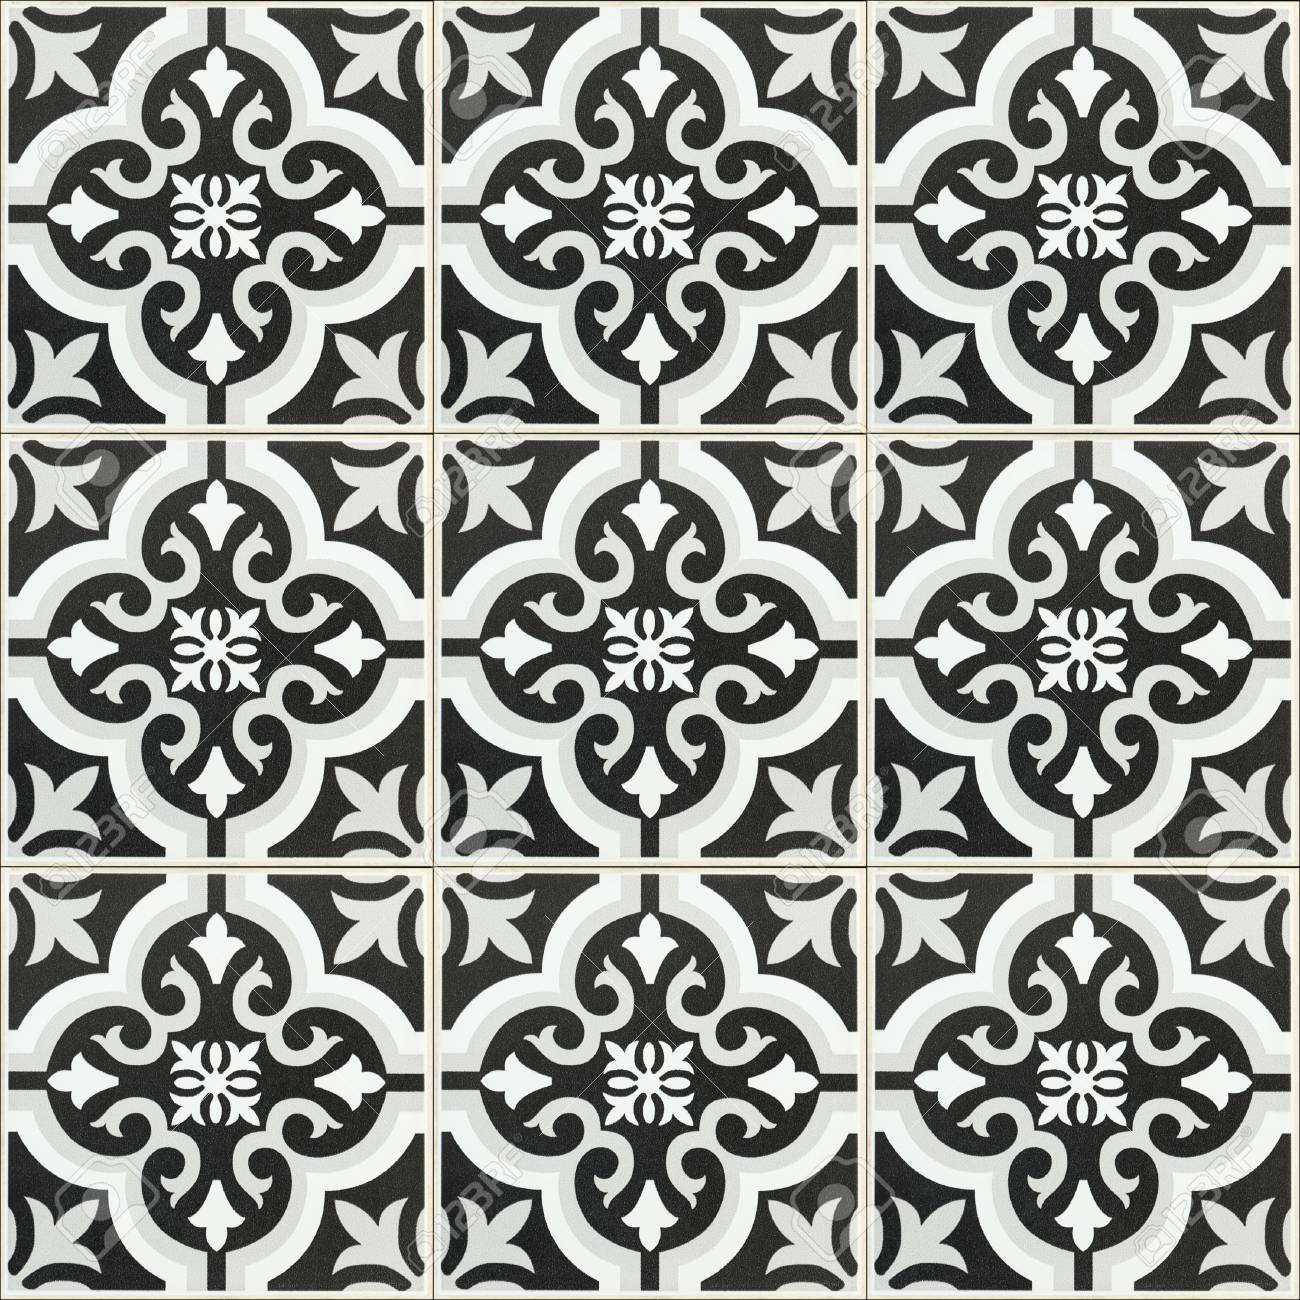 it is black and white ceramic tile texture for background and